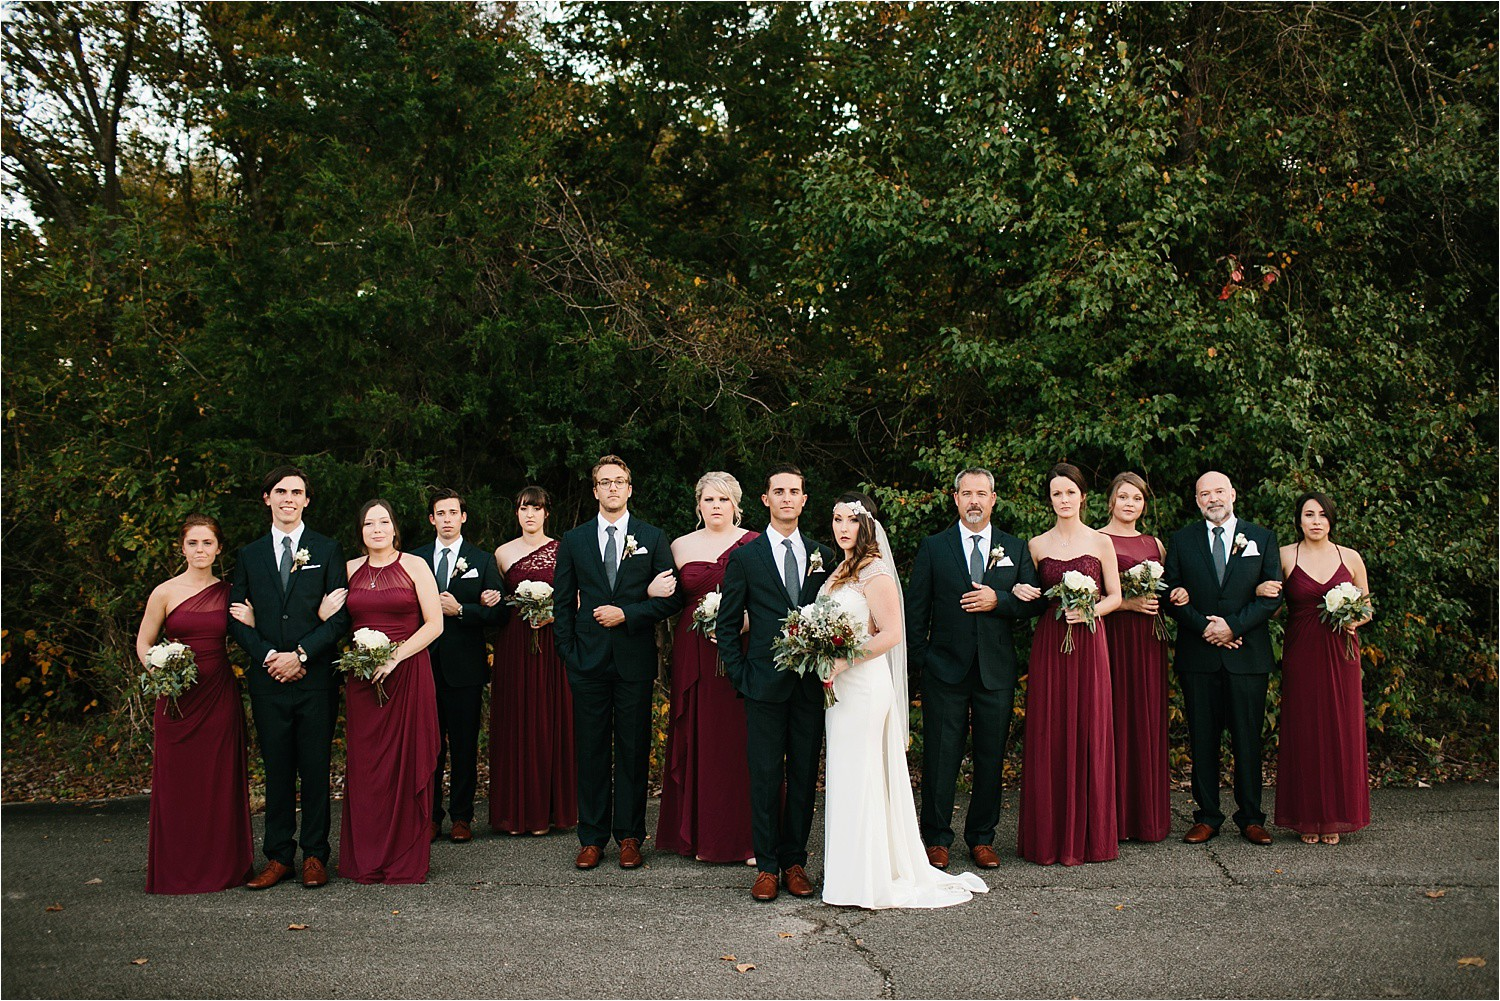 whittney-drew-__-an-intimate-wine-and-navy-wedding-in-an-industrial-venue-at-loft-123-in-paris-tx-by-north-texas-wedding-photographer-rachel-meagan-photography-_-071